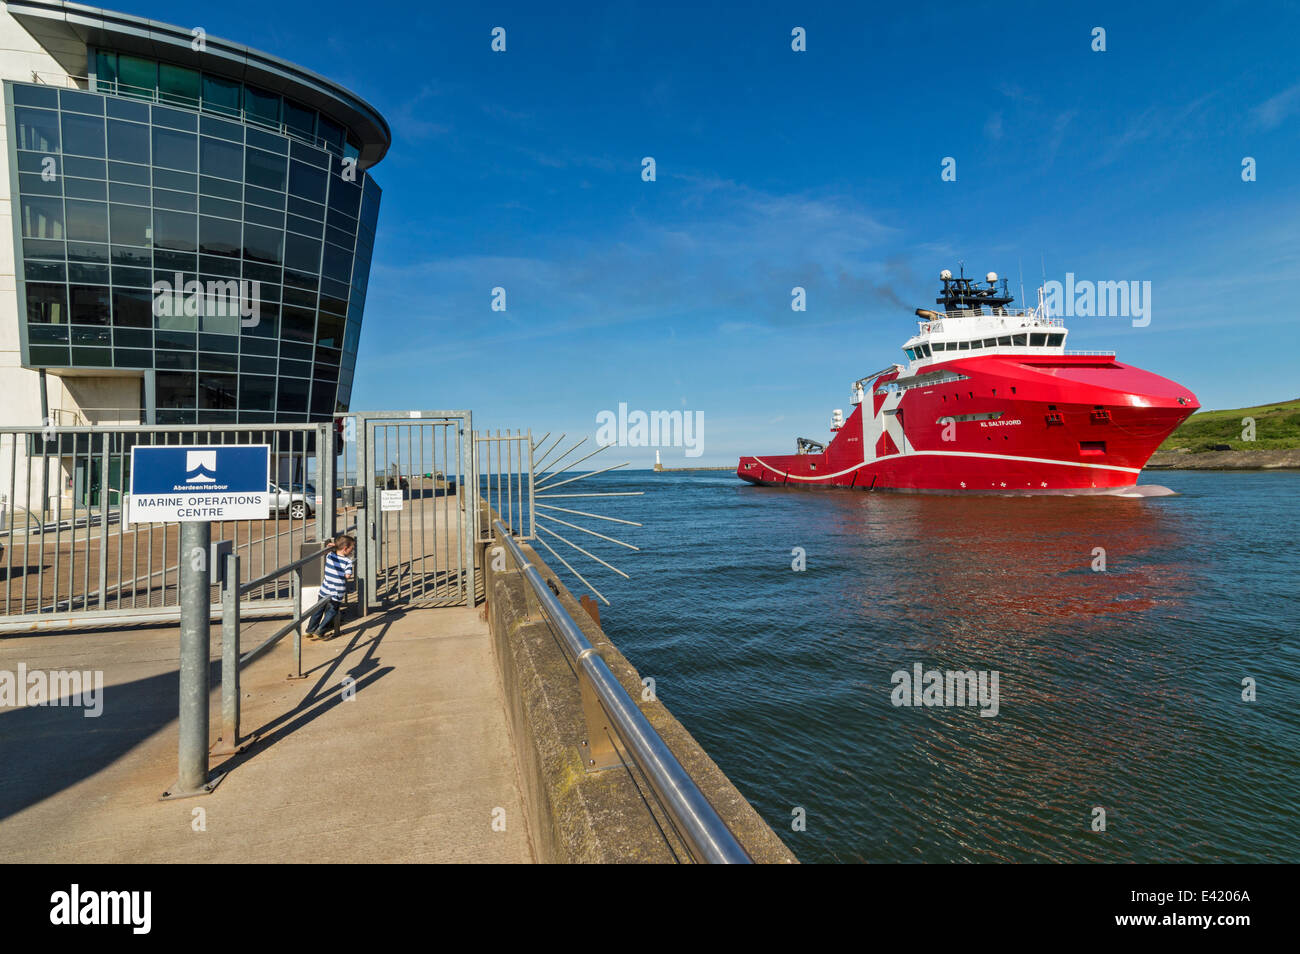 RED NORTH SEA OIL SHIP PASSING THE MARINE OPERATIONS CENTRE NORTH PIER ABERDEEN HARBOUR SCOTLAND - Stock Image